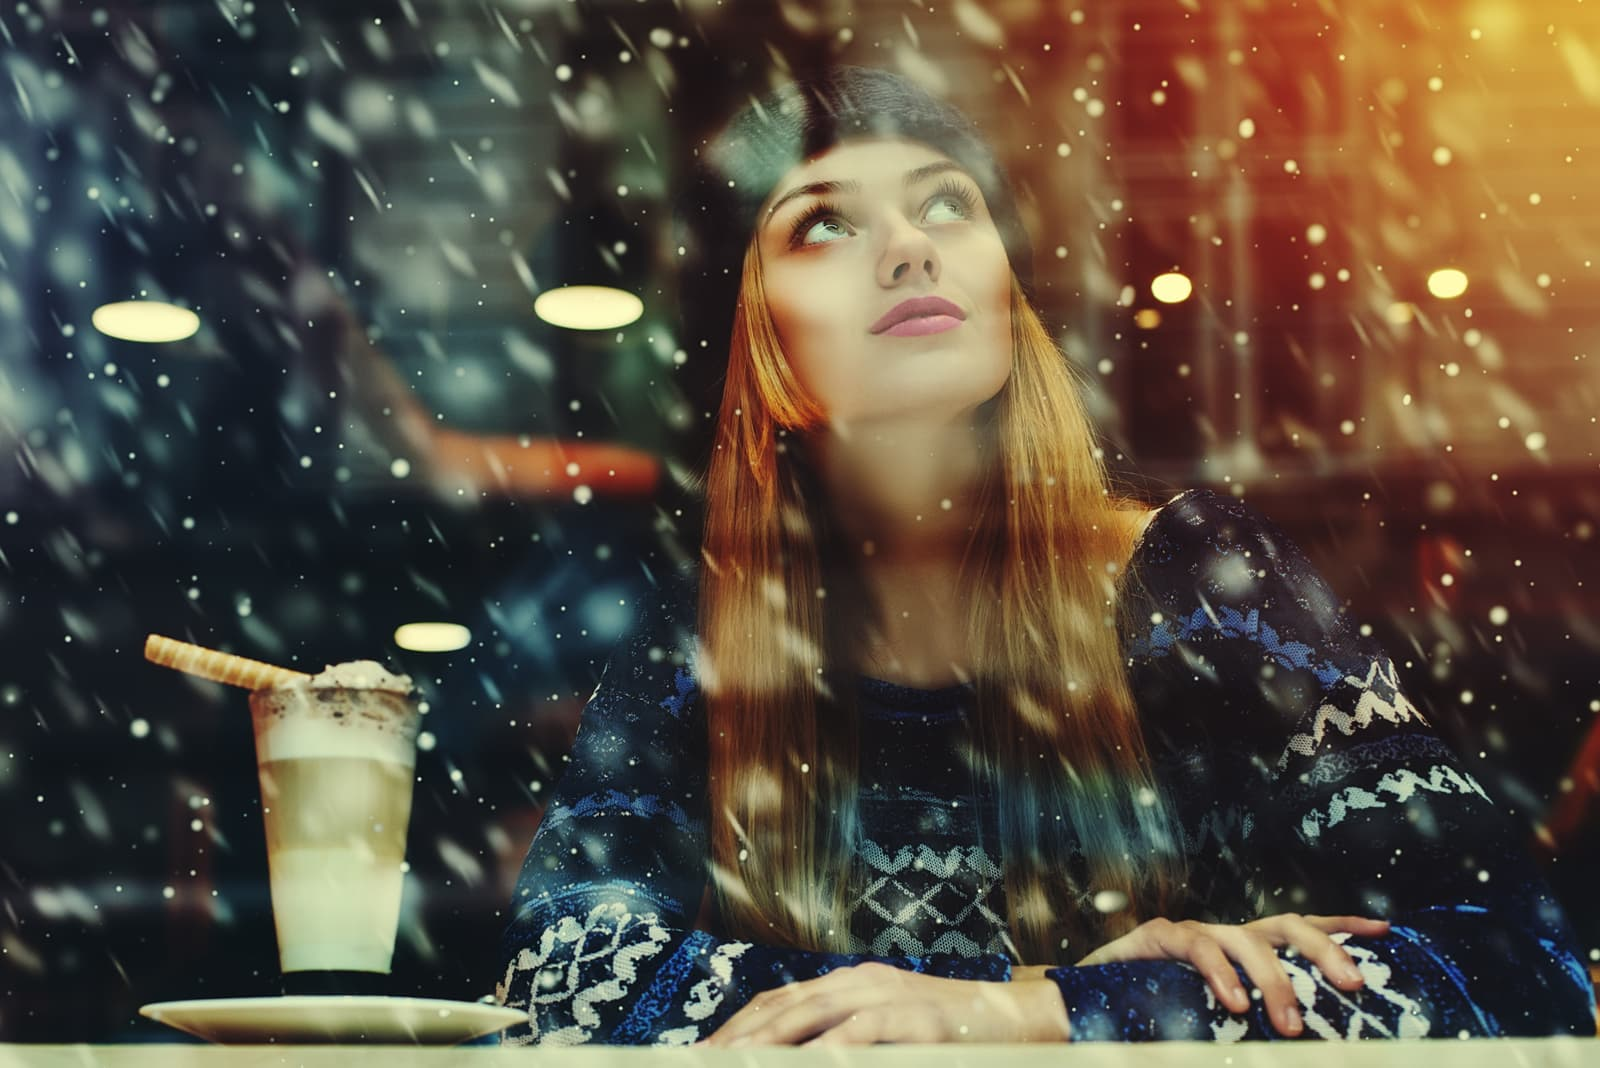 a beautiful girl in a sweater and a cap on her head sits at the bar by the window and watches the snow fall